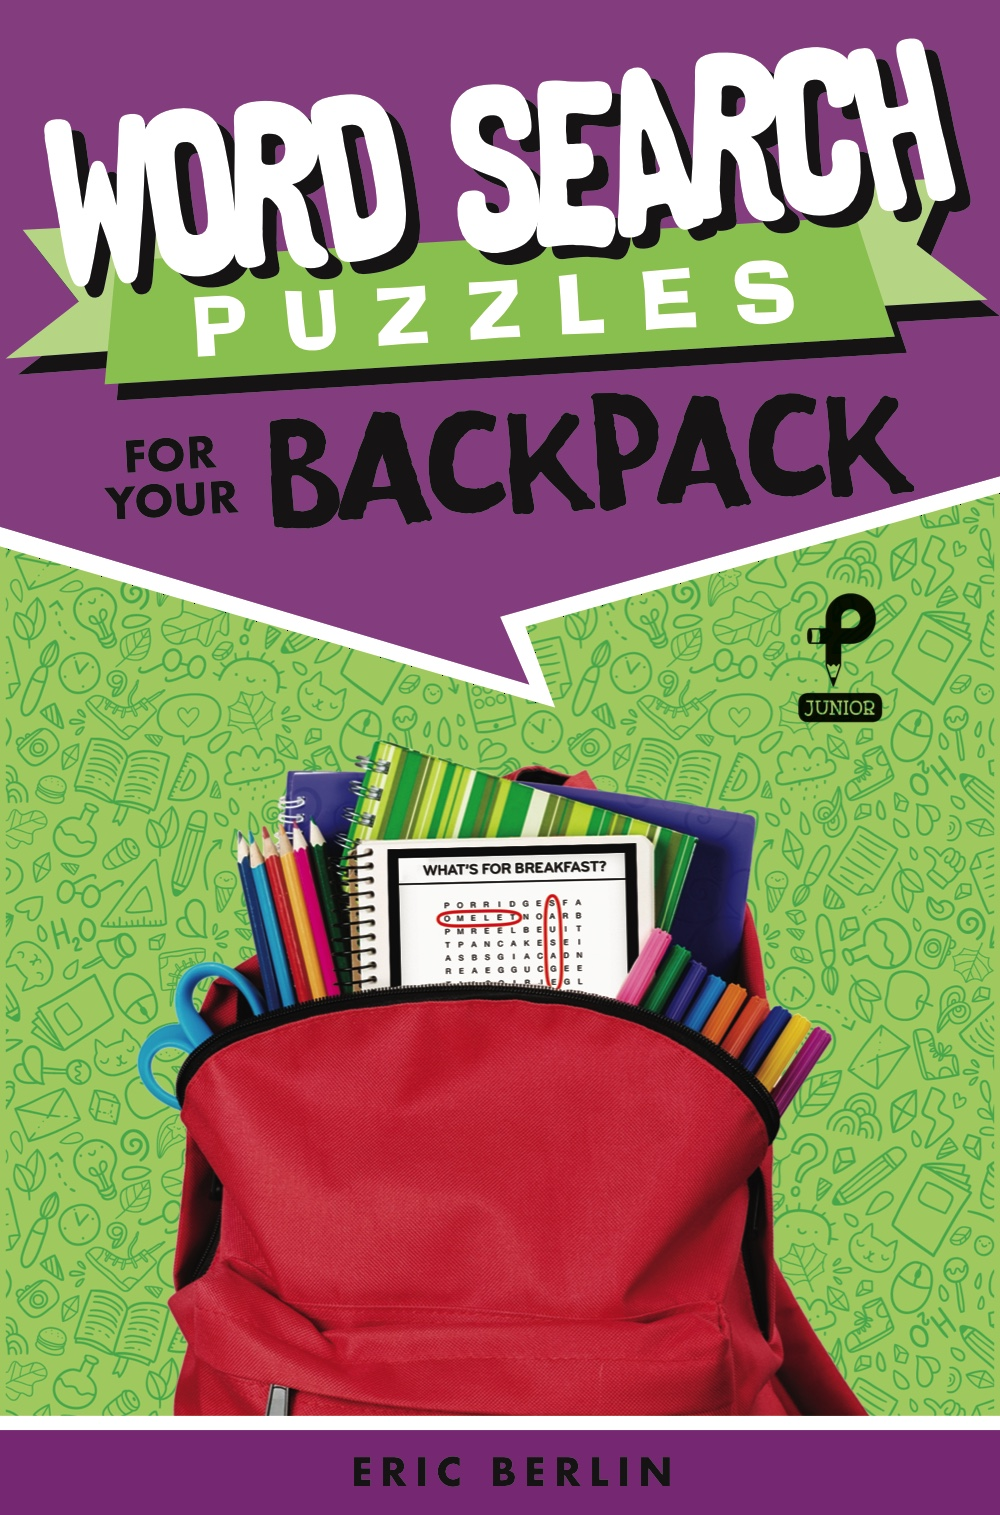 596102a86fa63 Word Search Puzzles for Your Backpack